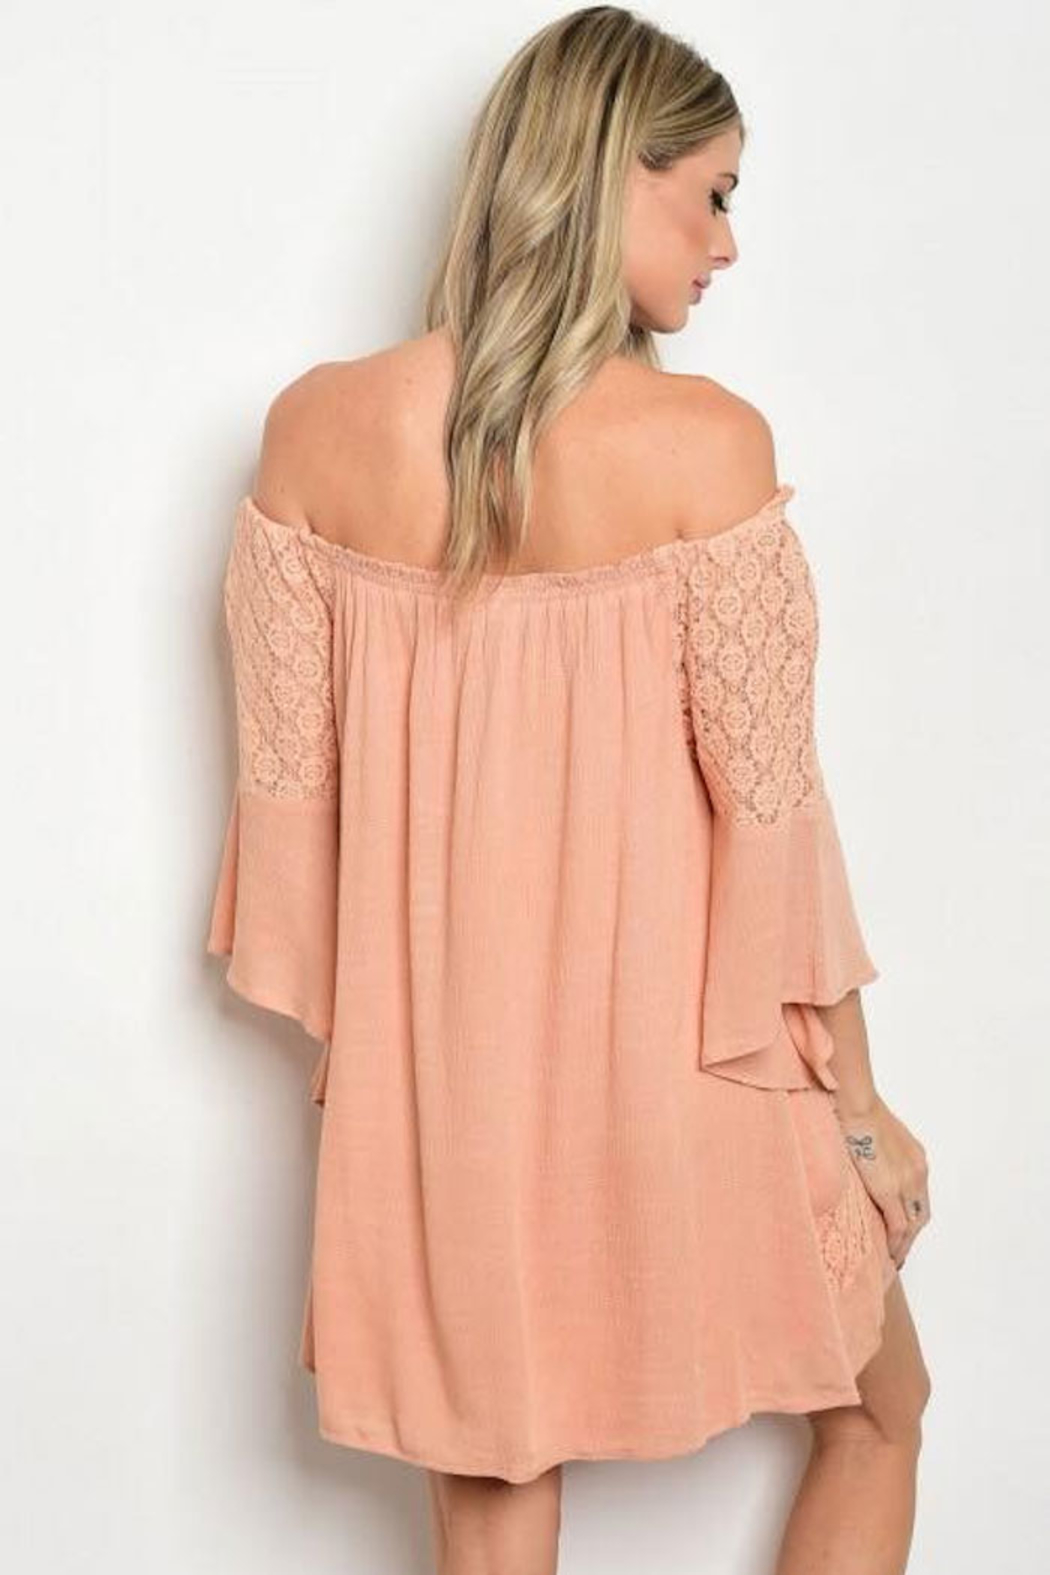 Tracie's Peach Off The Shoulder Lace Dress - Back Cropped Image